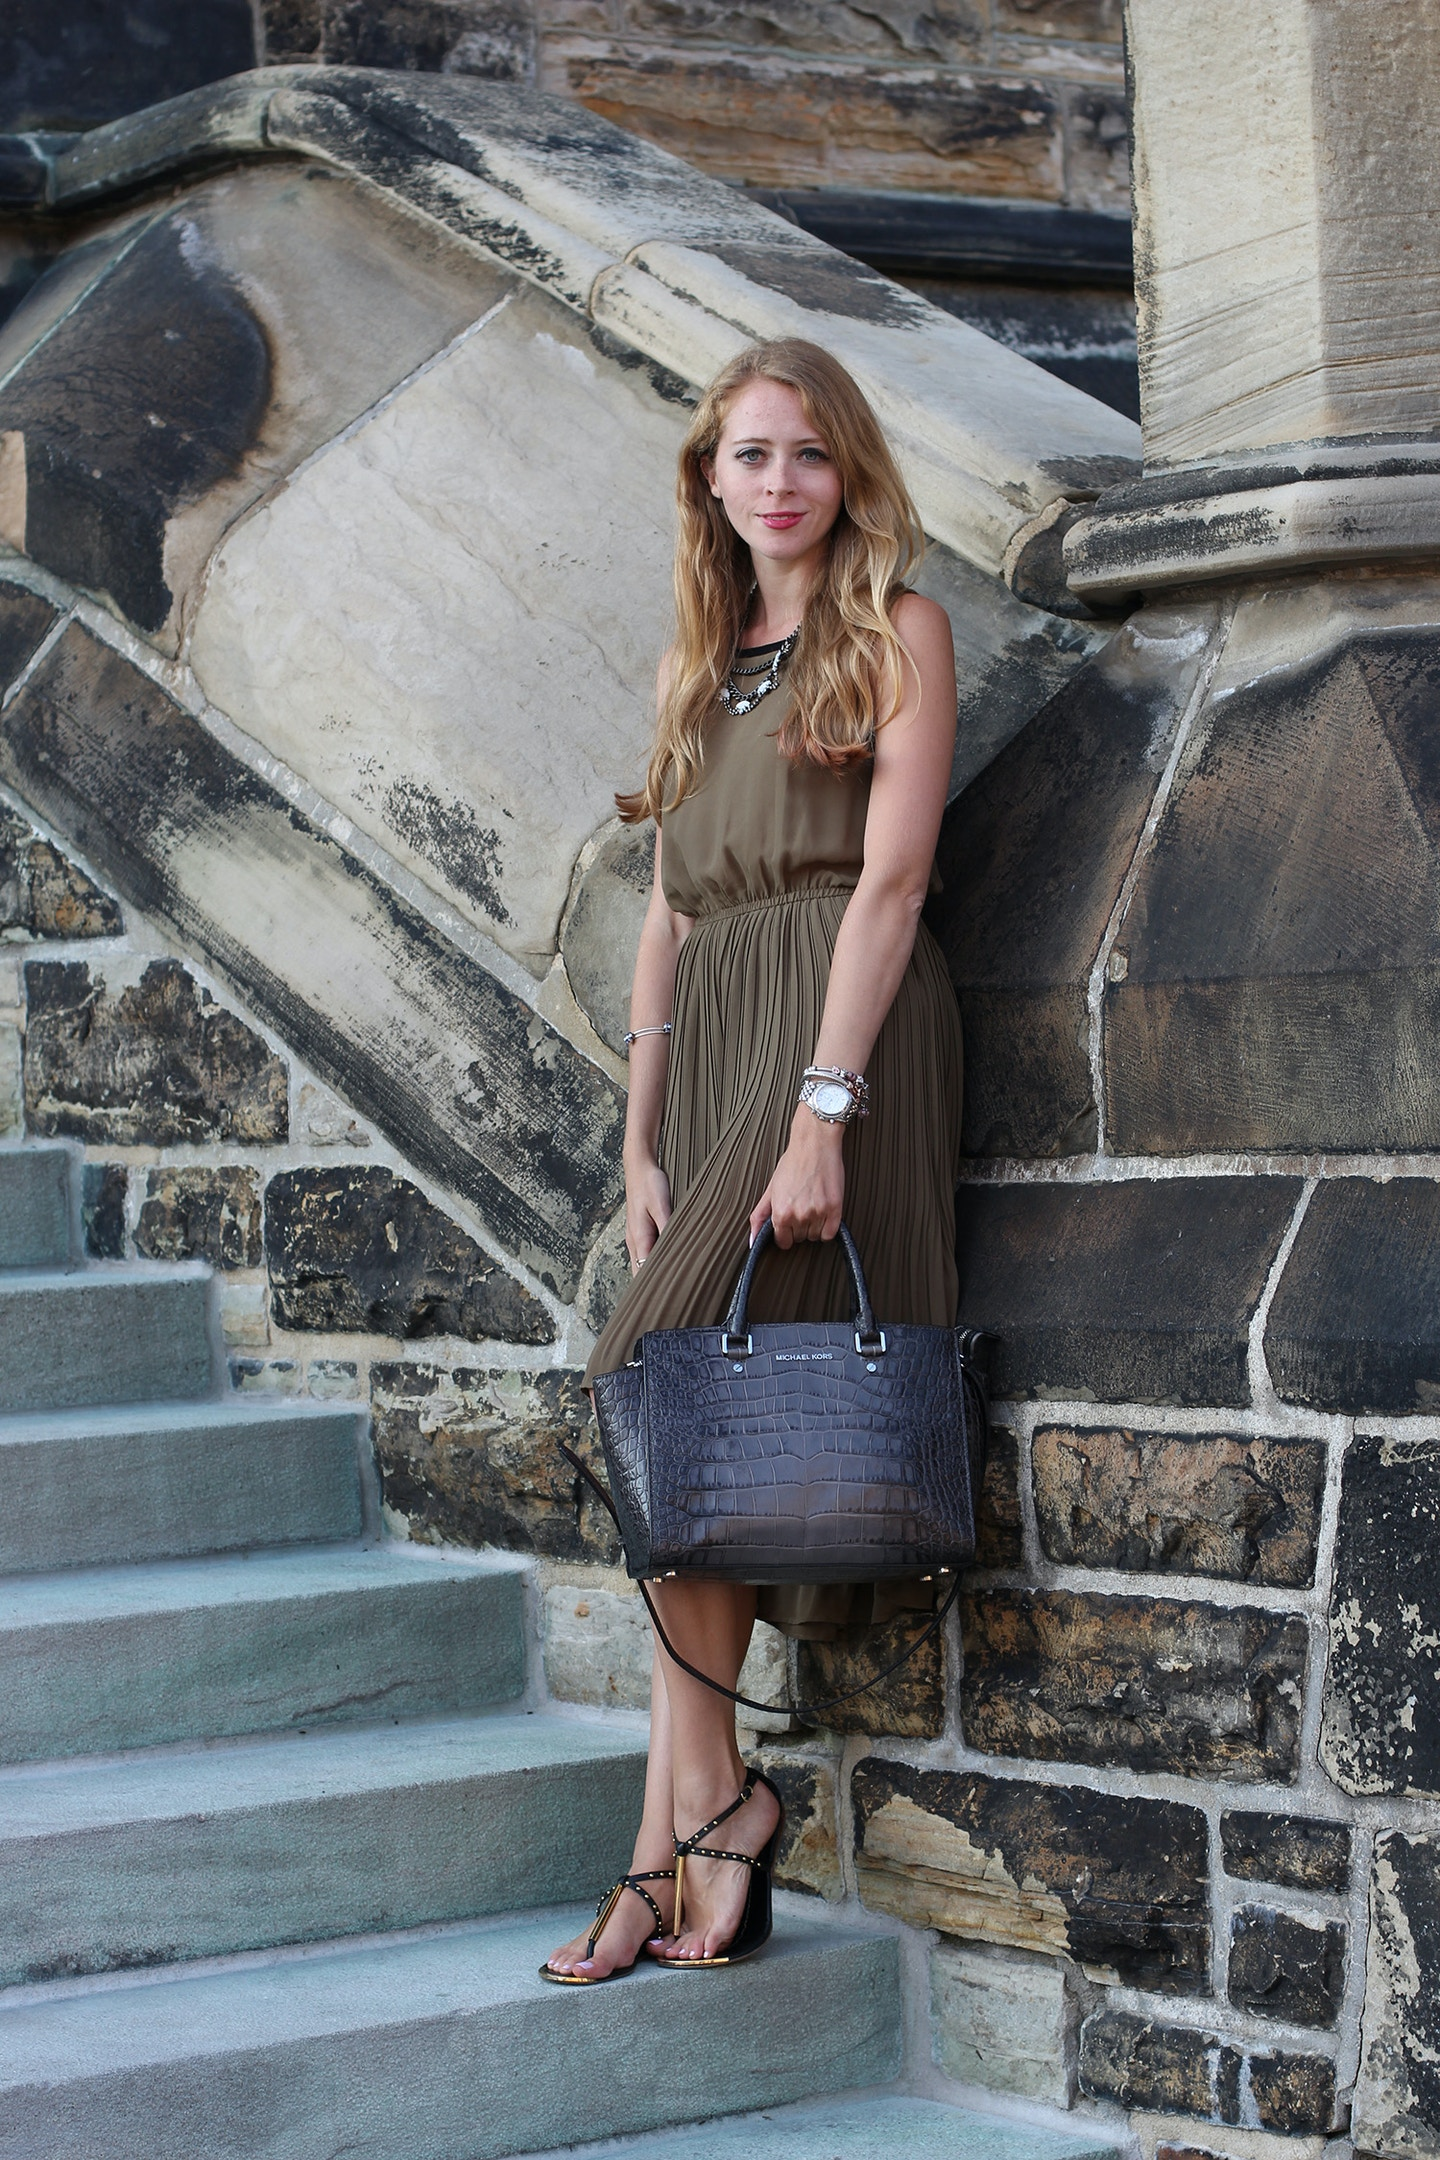 Parliament Hill – khaki chiffon dress